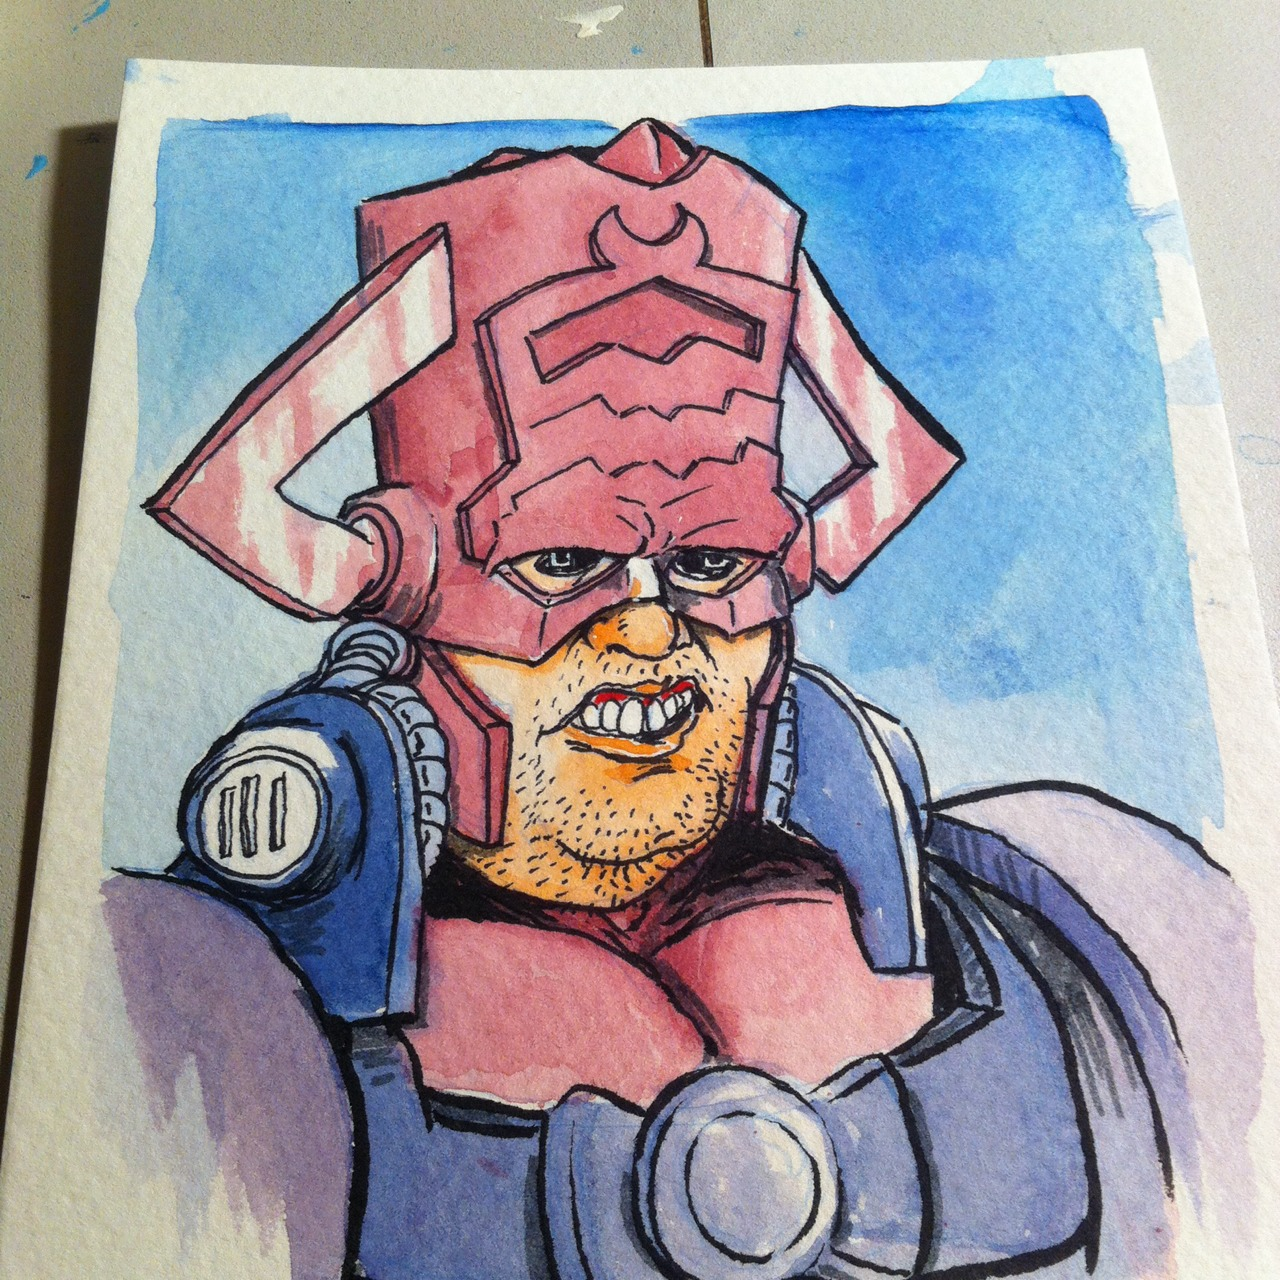 """Galactus from the Ugly Superheroes series. 5"""" x 7"""" watercolor painting made exclusively for The East Bay Comic Con. Can you tell I really like drawing Galactus?"""